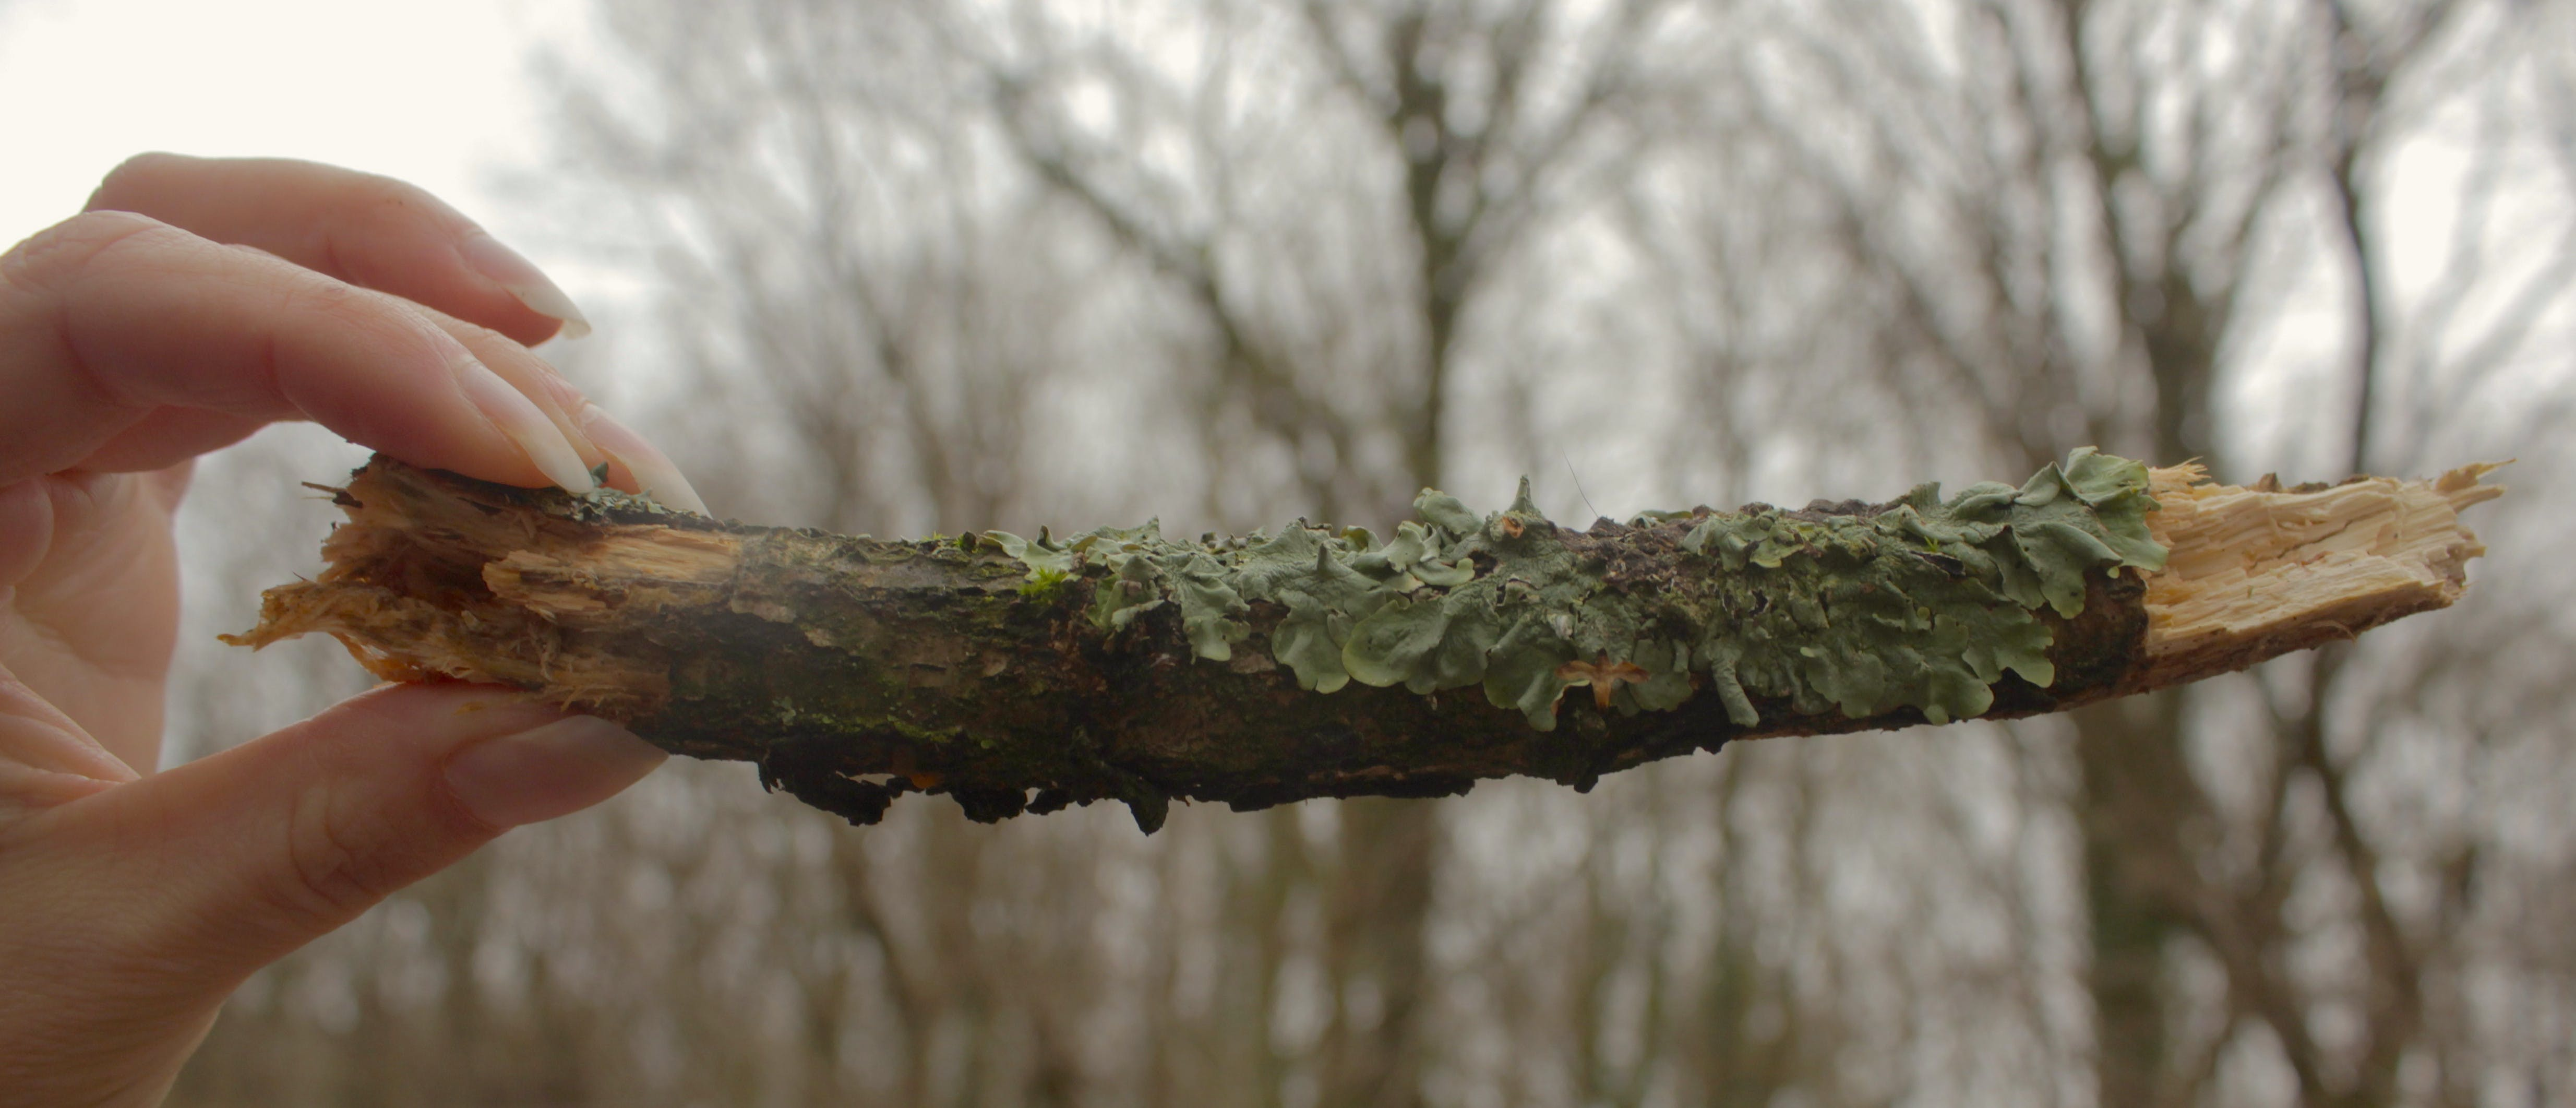 Free stock photo of nature photography, tree, twig